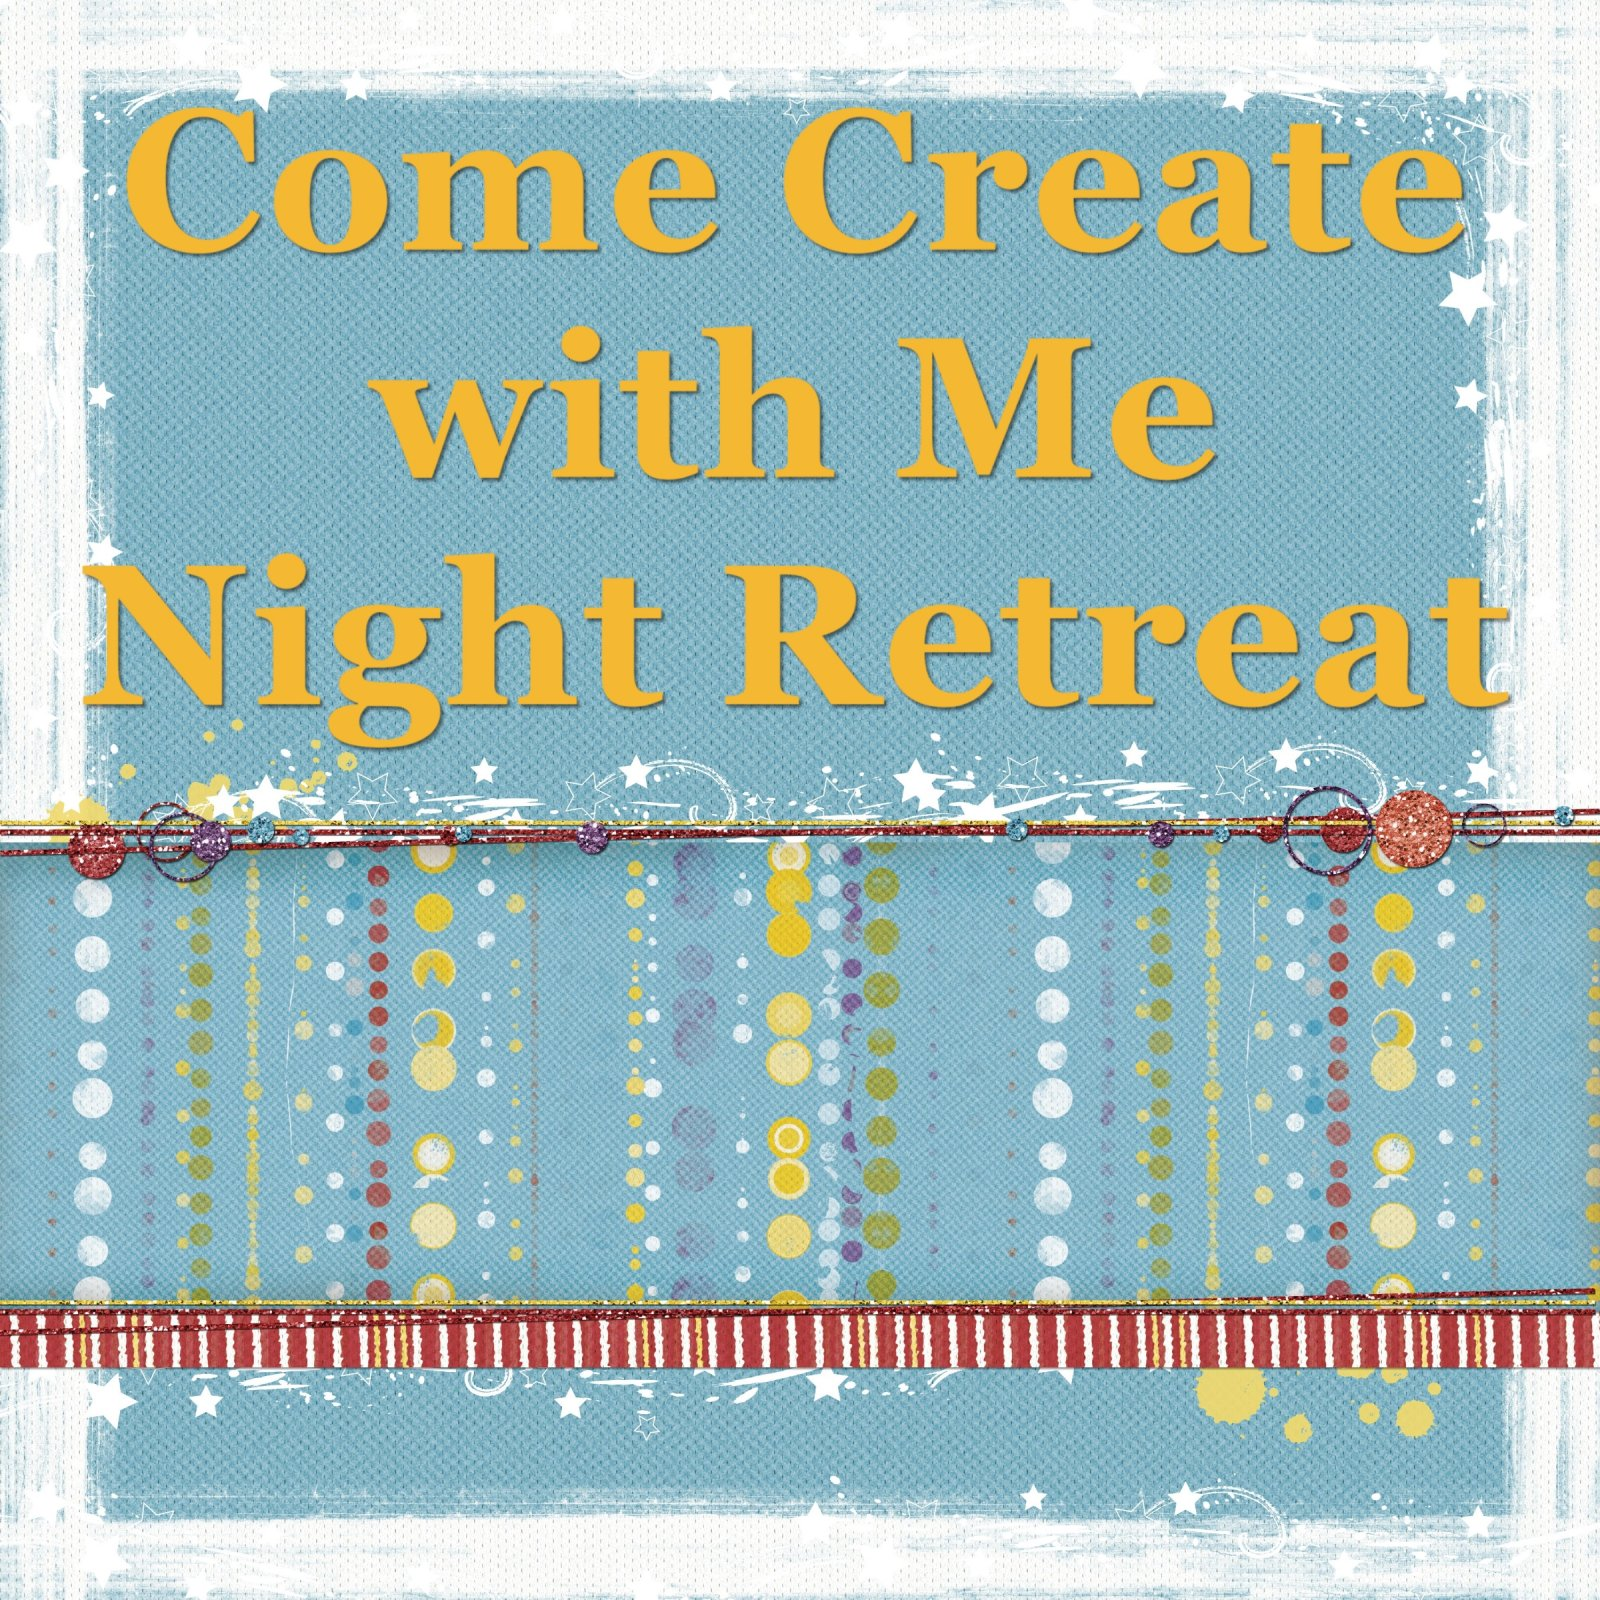 Come Create with Me Night Retreat--April 12, 2021